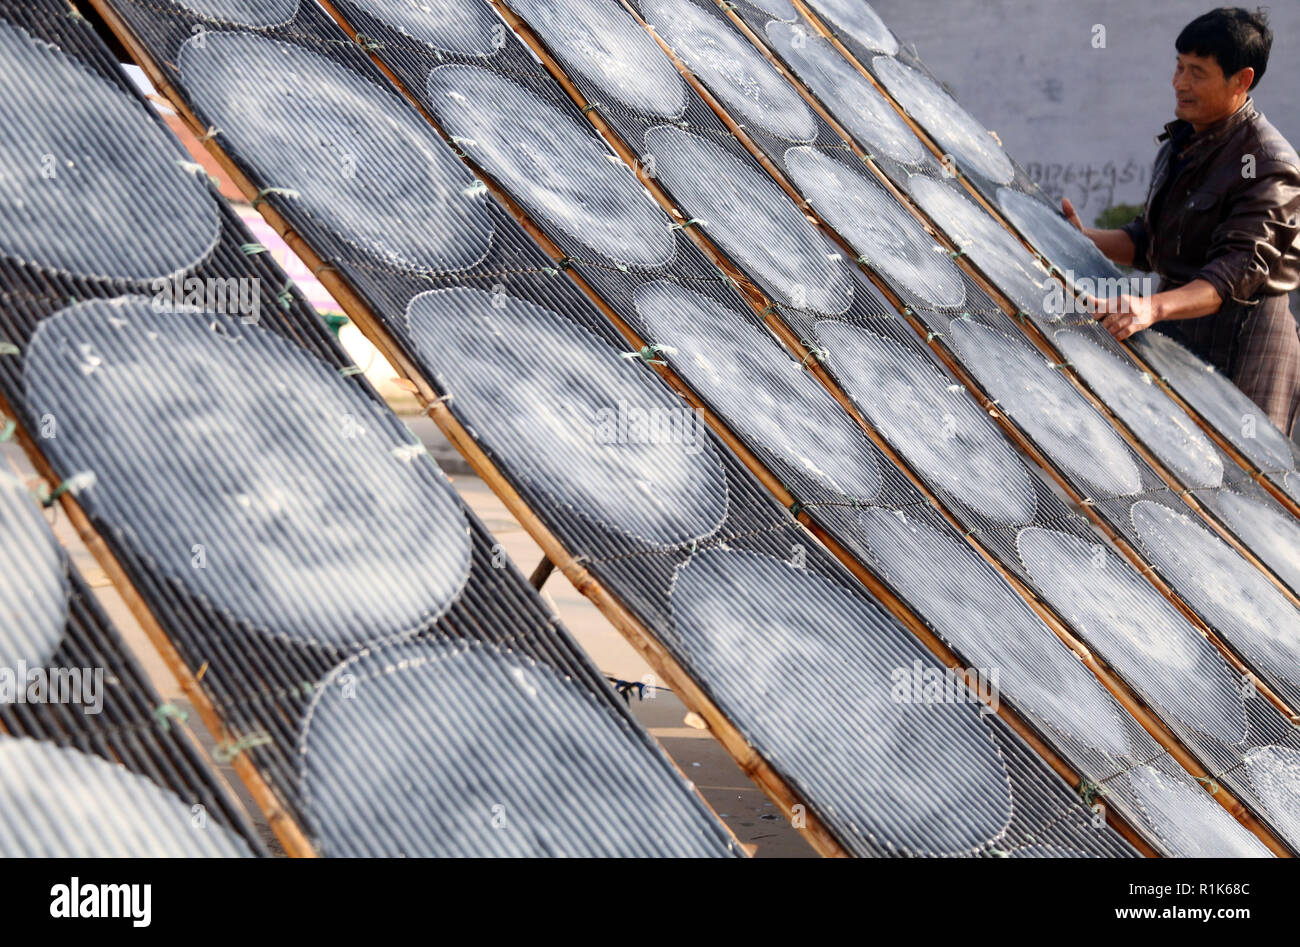 Binzhou, China's Shandong Province. 13th Nov, 2018. A farmer airs sweet potato starch jelly in Dongzheng Village, Boxing County, east China's Shandong Province, Nov. 13, 2018. Credit: Chen Bin/Xinhua/Alamy Live News - Stock Image